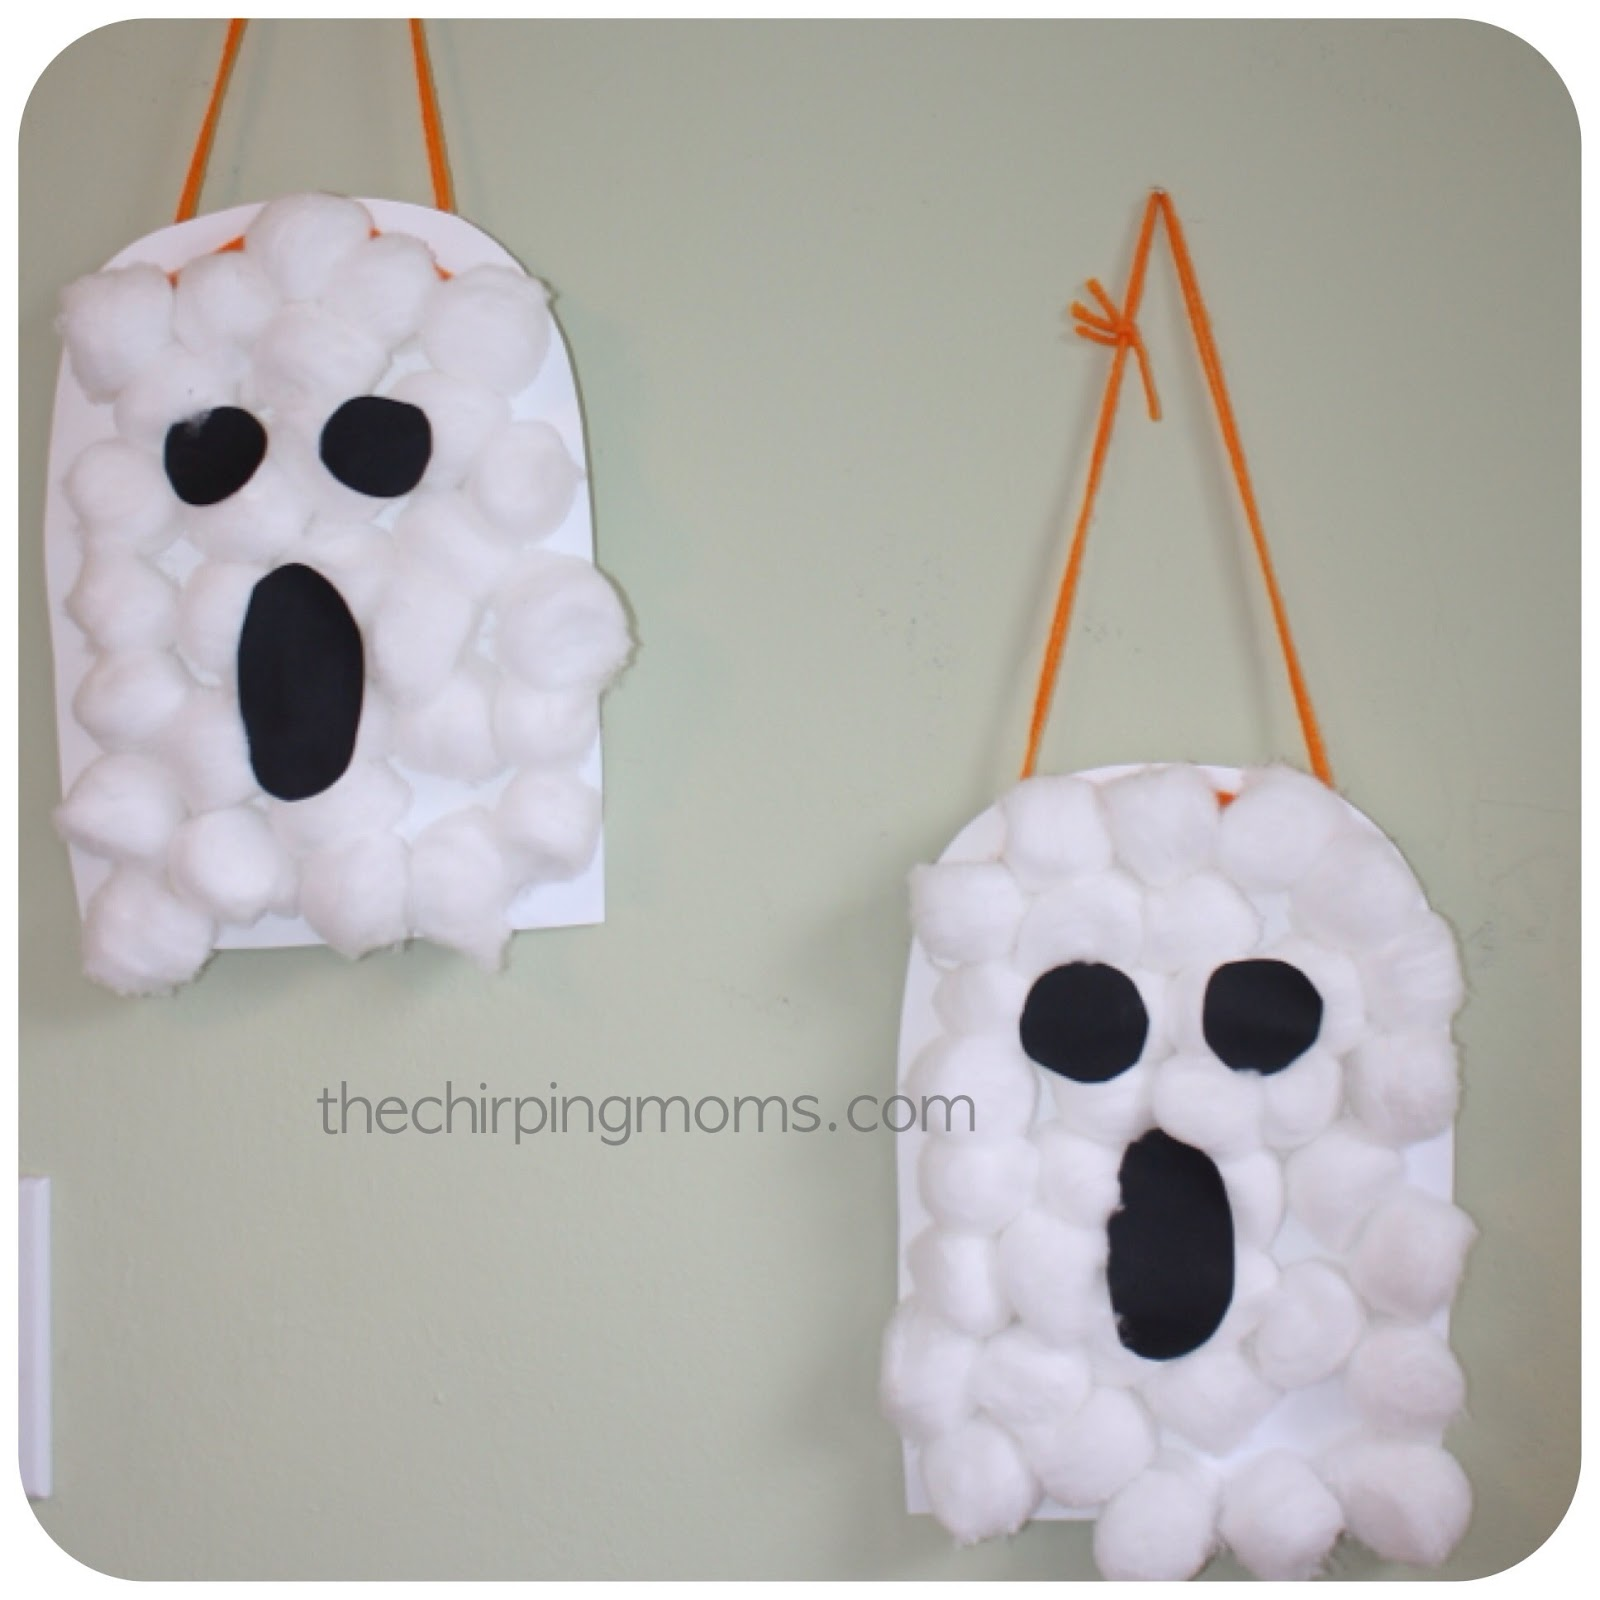 Halloween Cutouts For Kids: Halloween Projects For The Kids